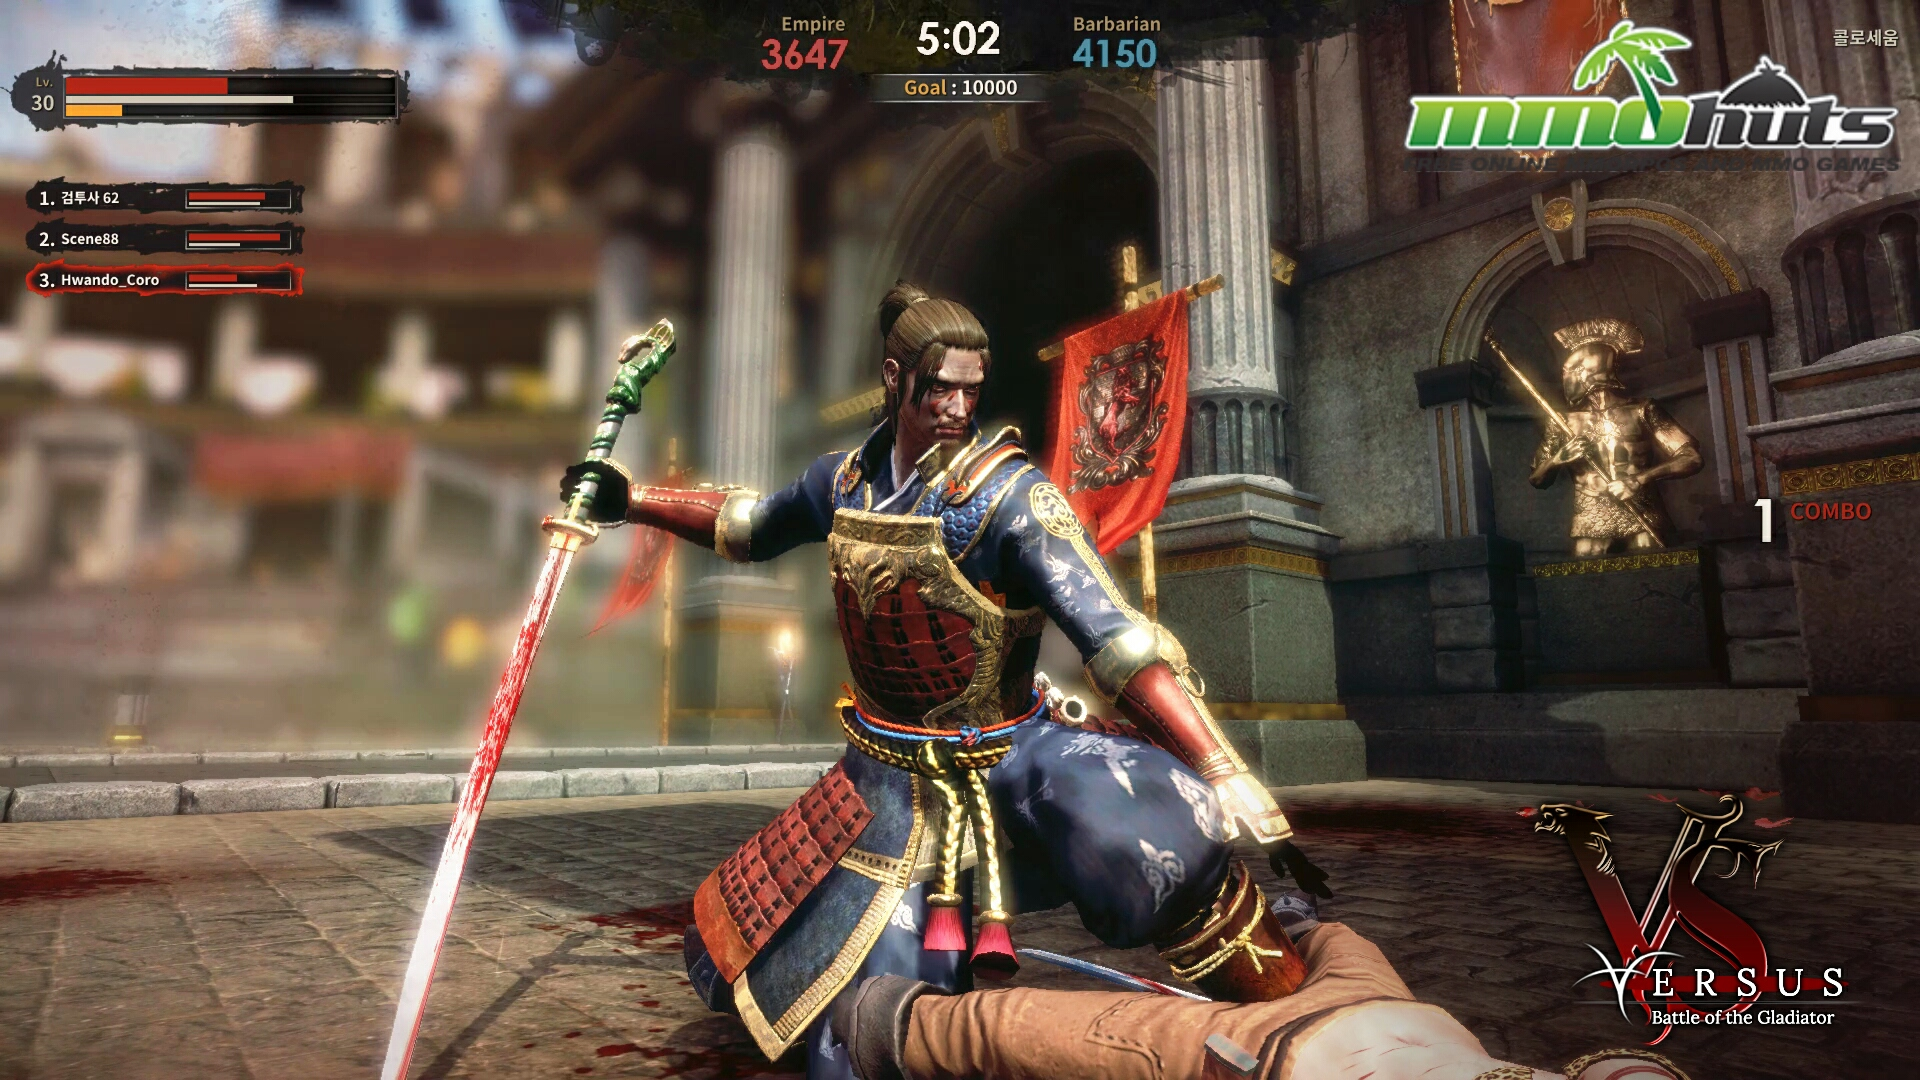 Play eGames.com's Swords and Sandals Gladiator Game